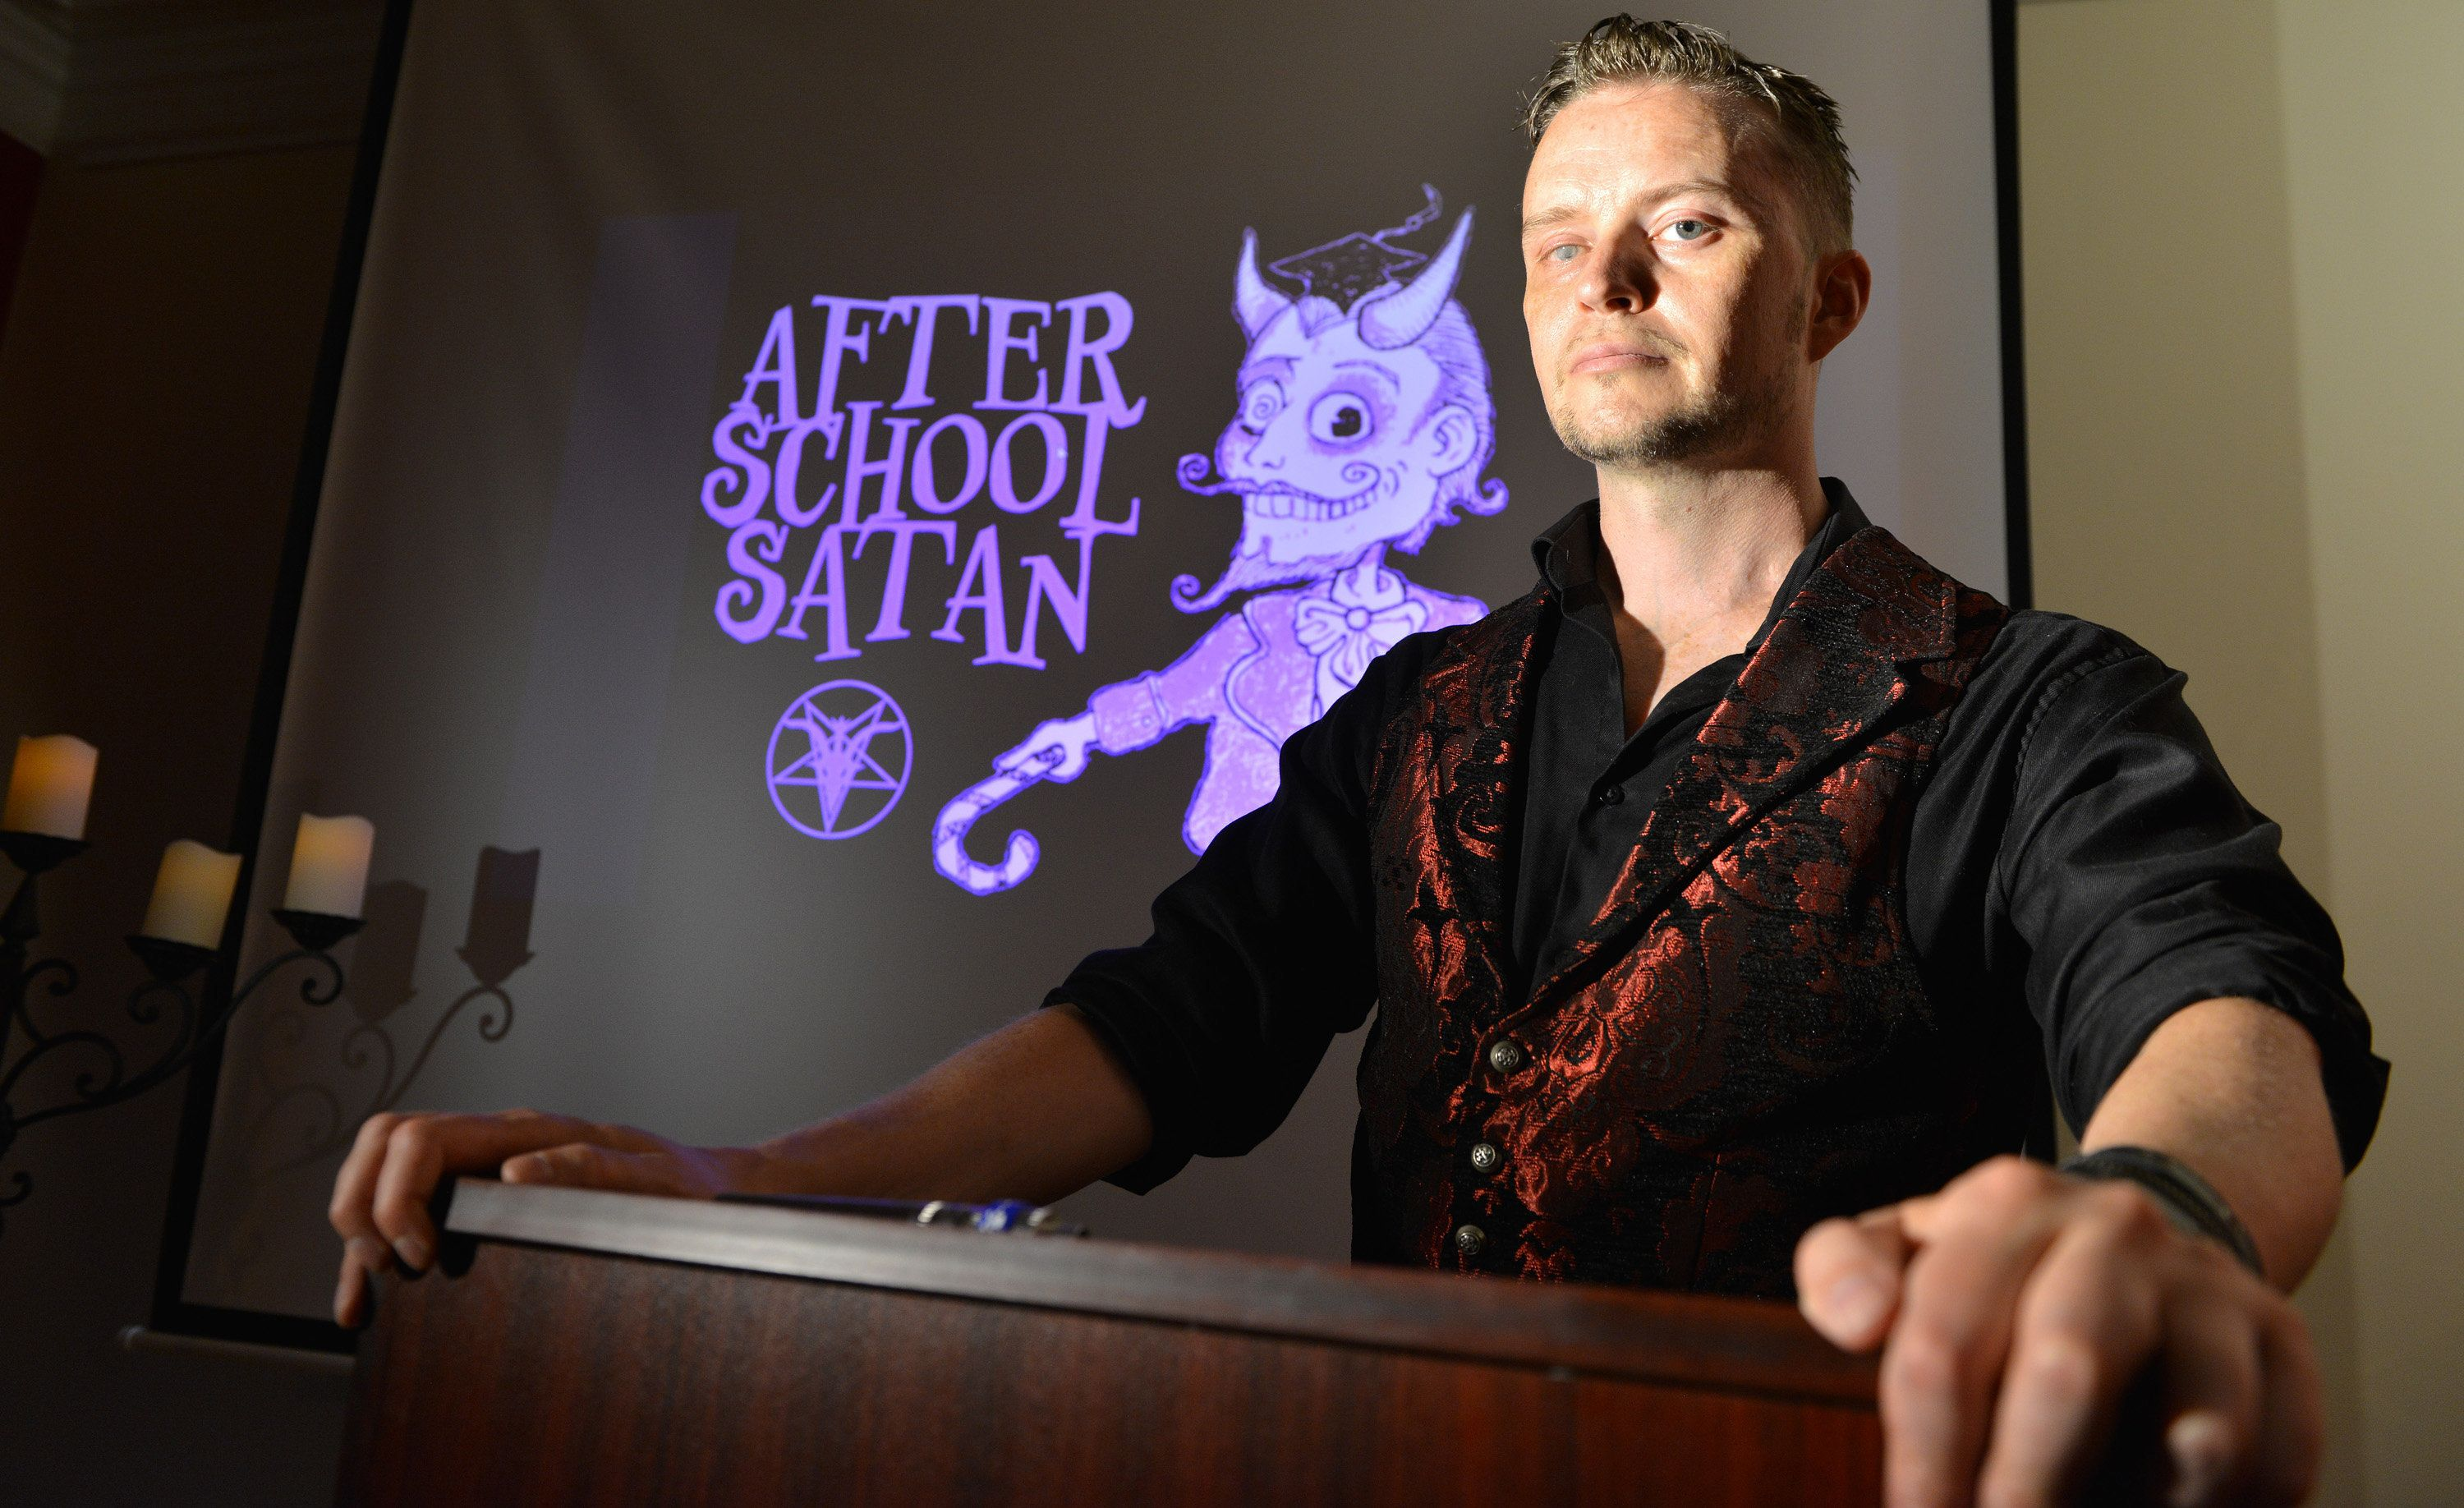 SALEM, MA - JULY 25: Lucien Greaves, is spokesman for The Satanic Temple, a group of political activists who identify themselves as a religious sect, are seeking to establish After-School Satan clubs as a counterpart to fundamentalist Christian Good News Clubs, which they see as the Religious Right to infiltrate  public education, and erode the separation of church and state. (Photo by Josh Reynolds for The Washington Post via Getty Images)